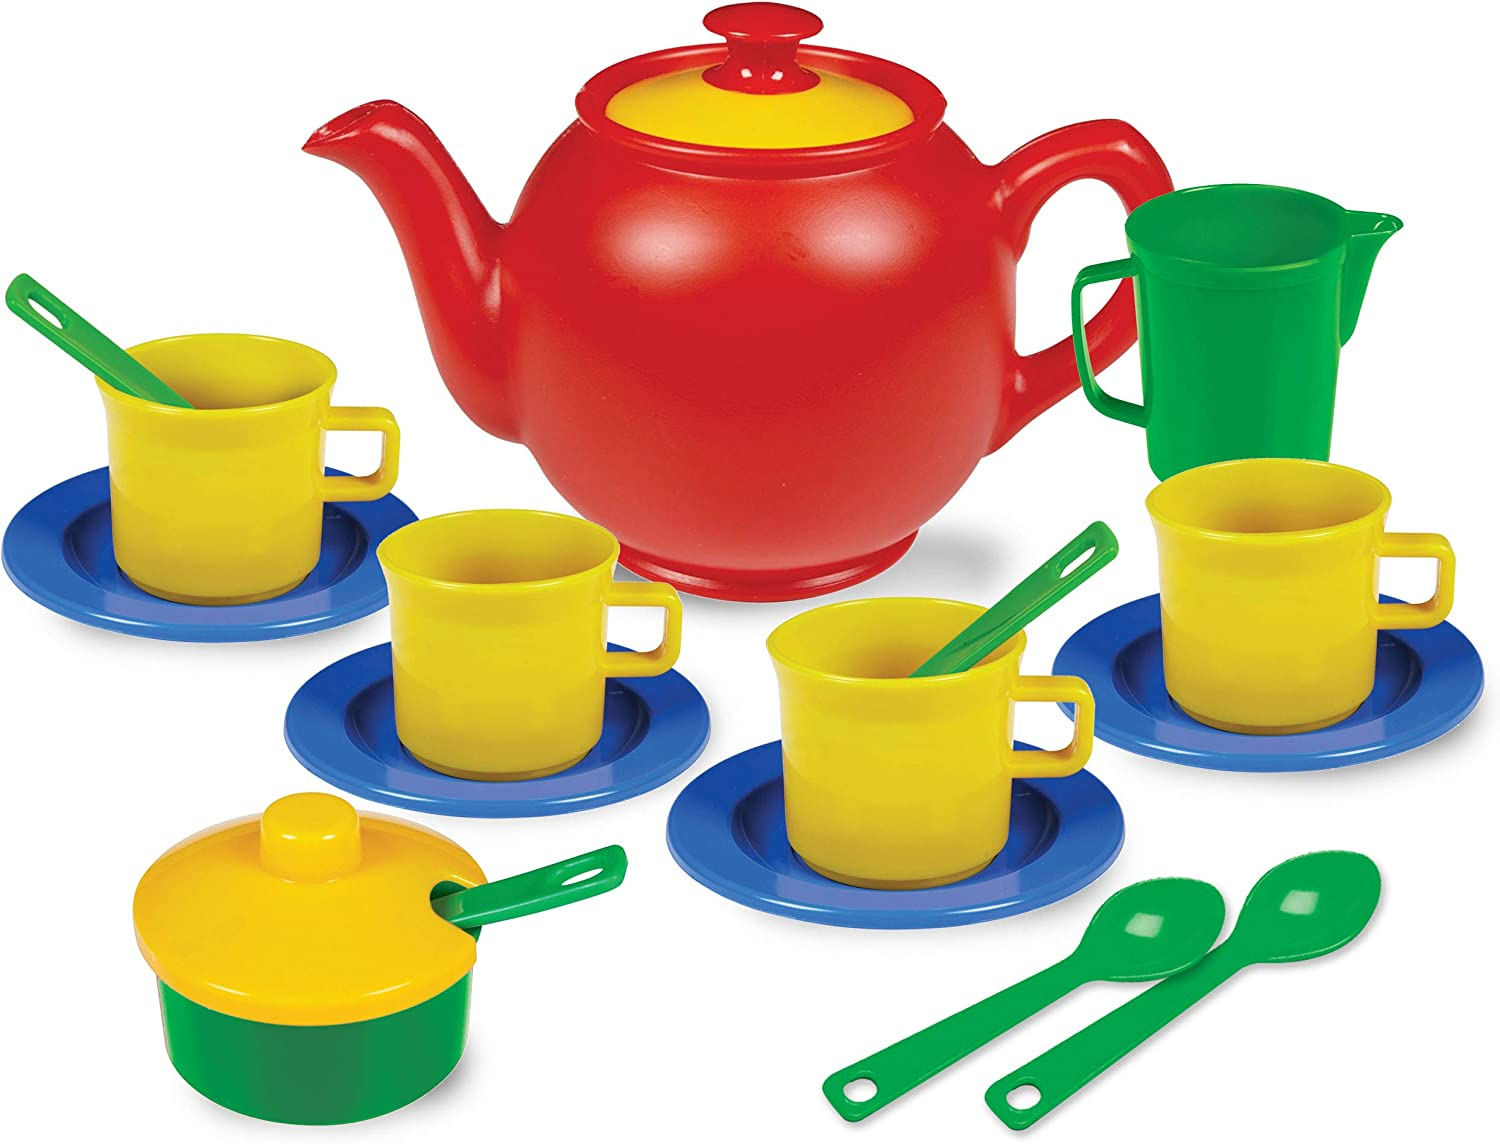 Top 10 Best Tea Sets for Kids Reviews in 2020 7